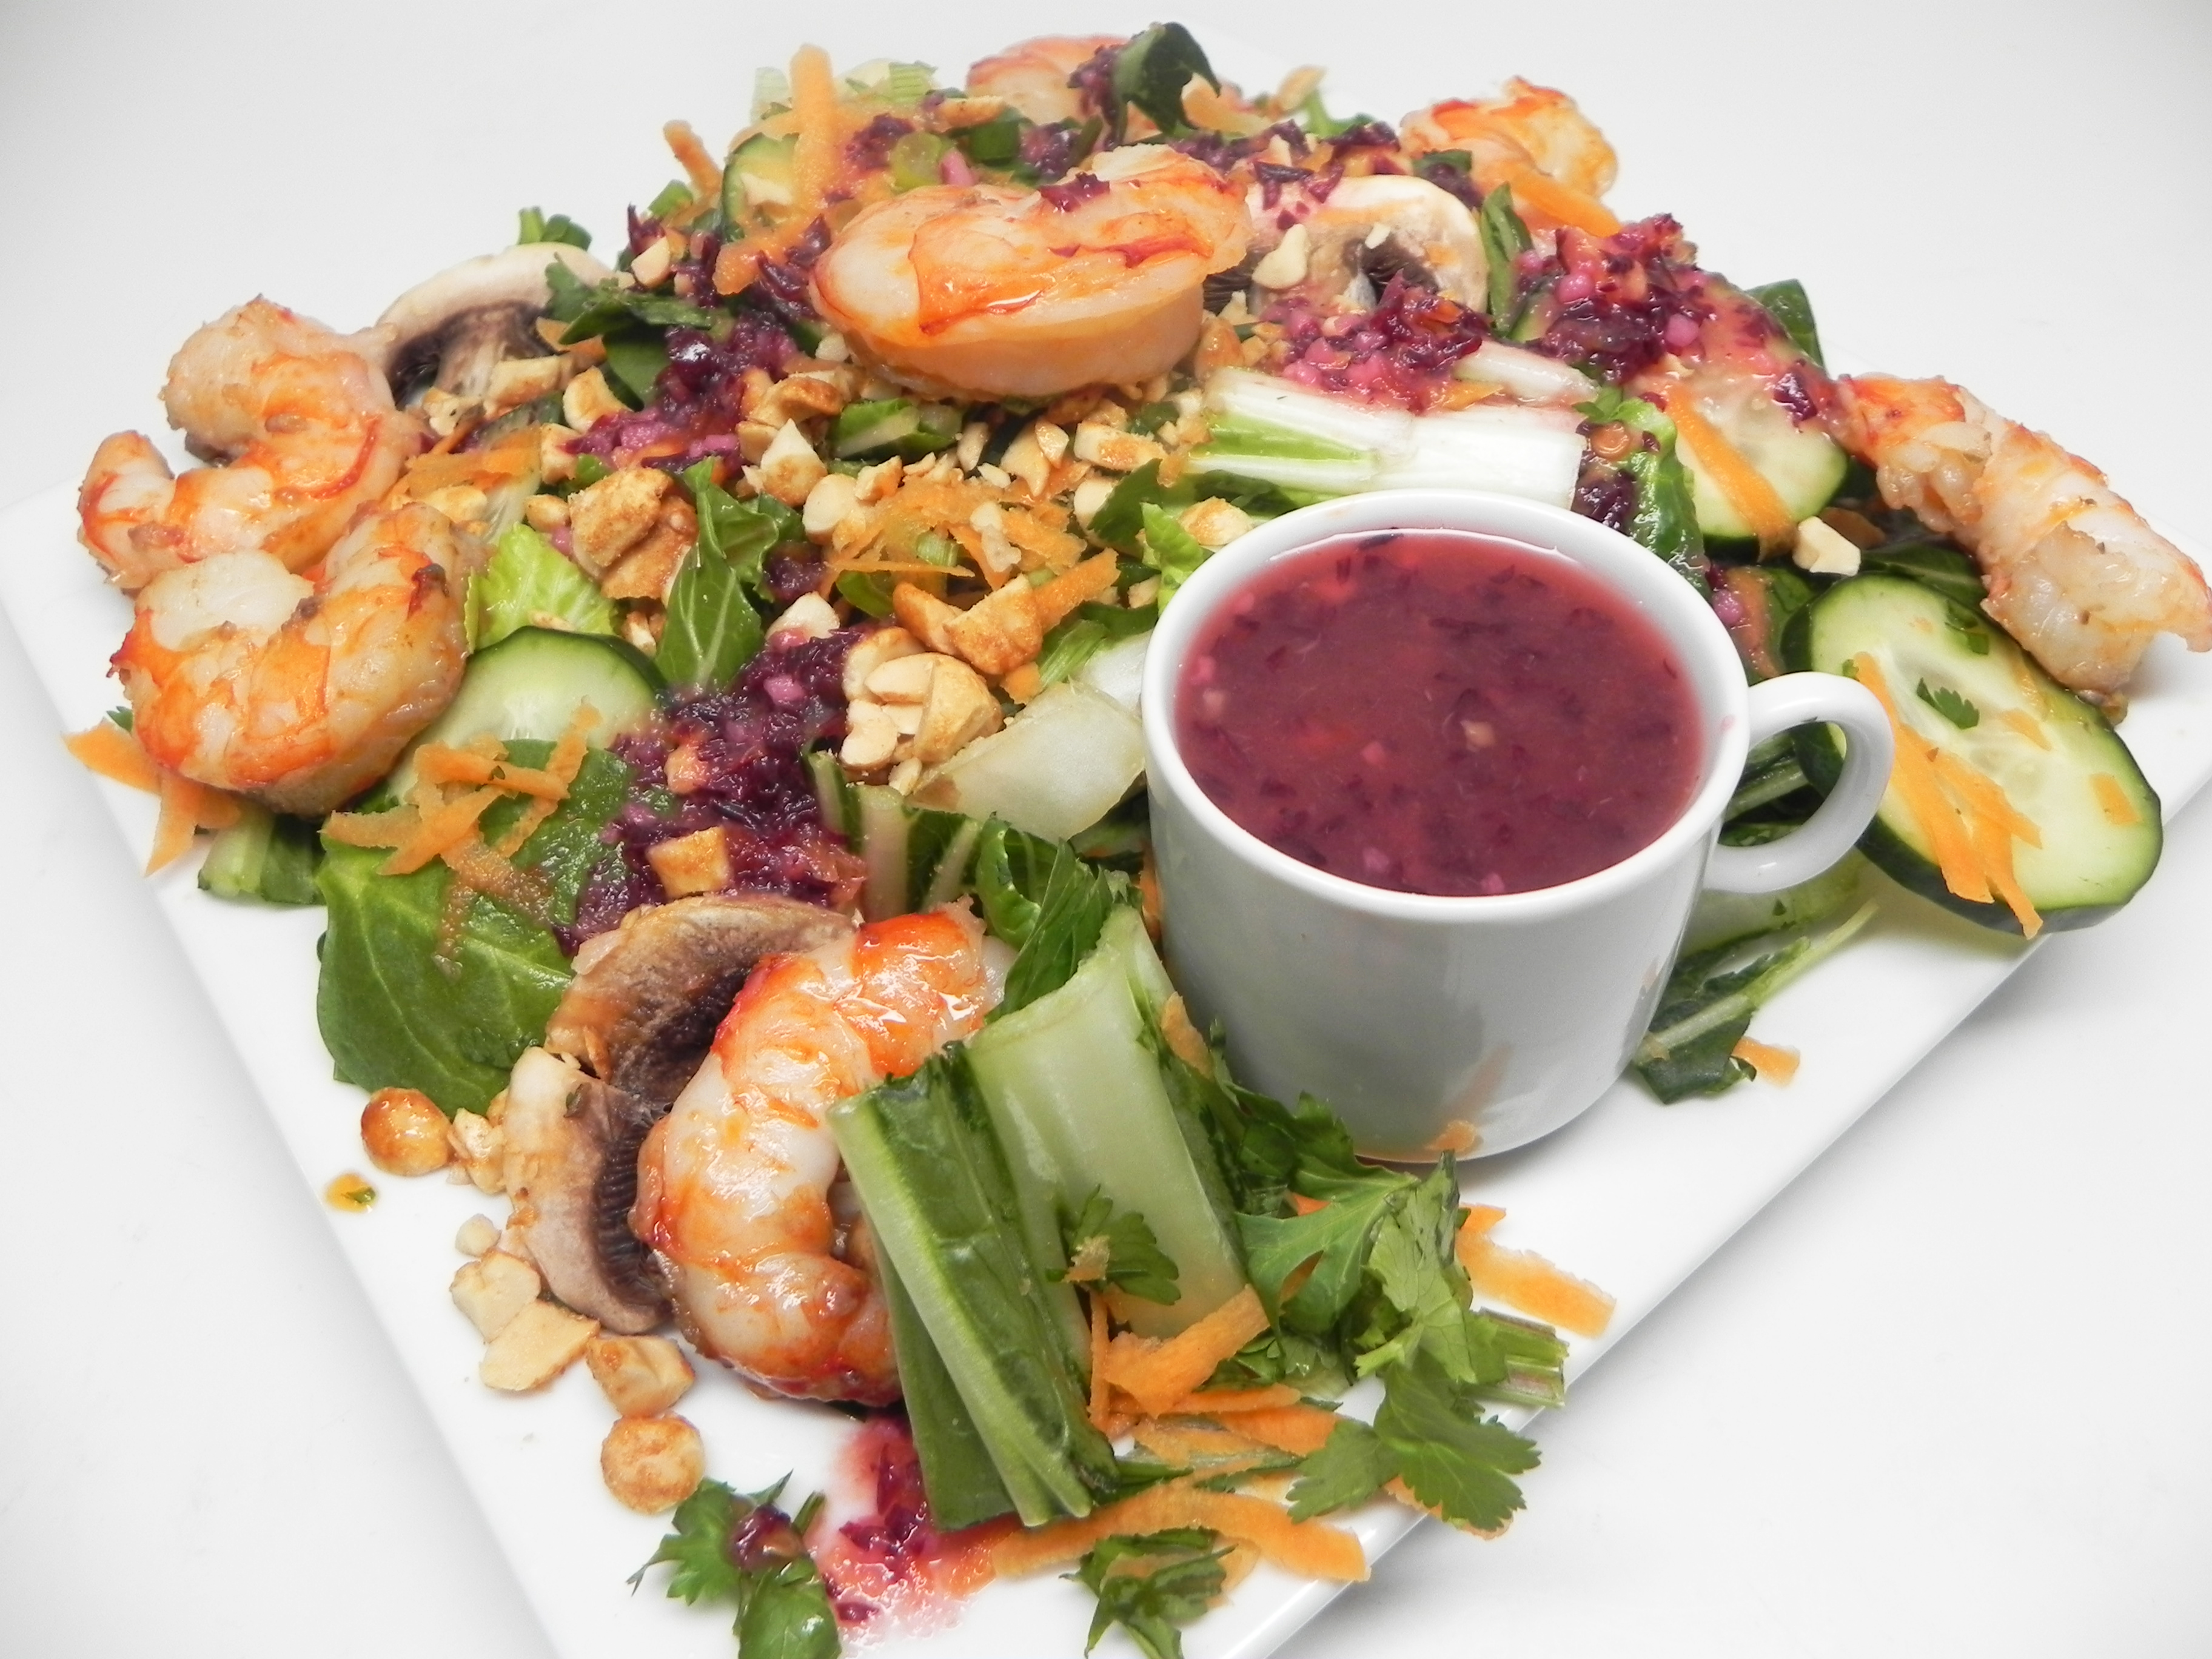 Grilled Shrimp, Pea Shoot, and Bok Choy Salad with Asian Reduced Fat Dressing